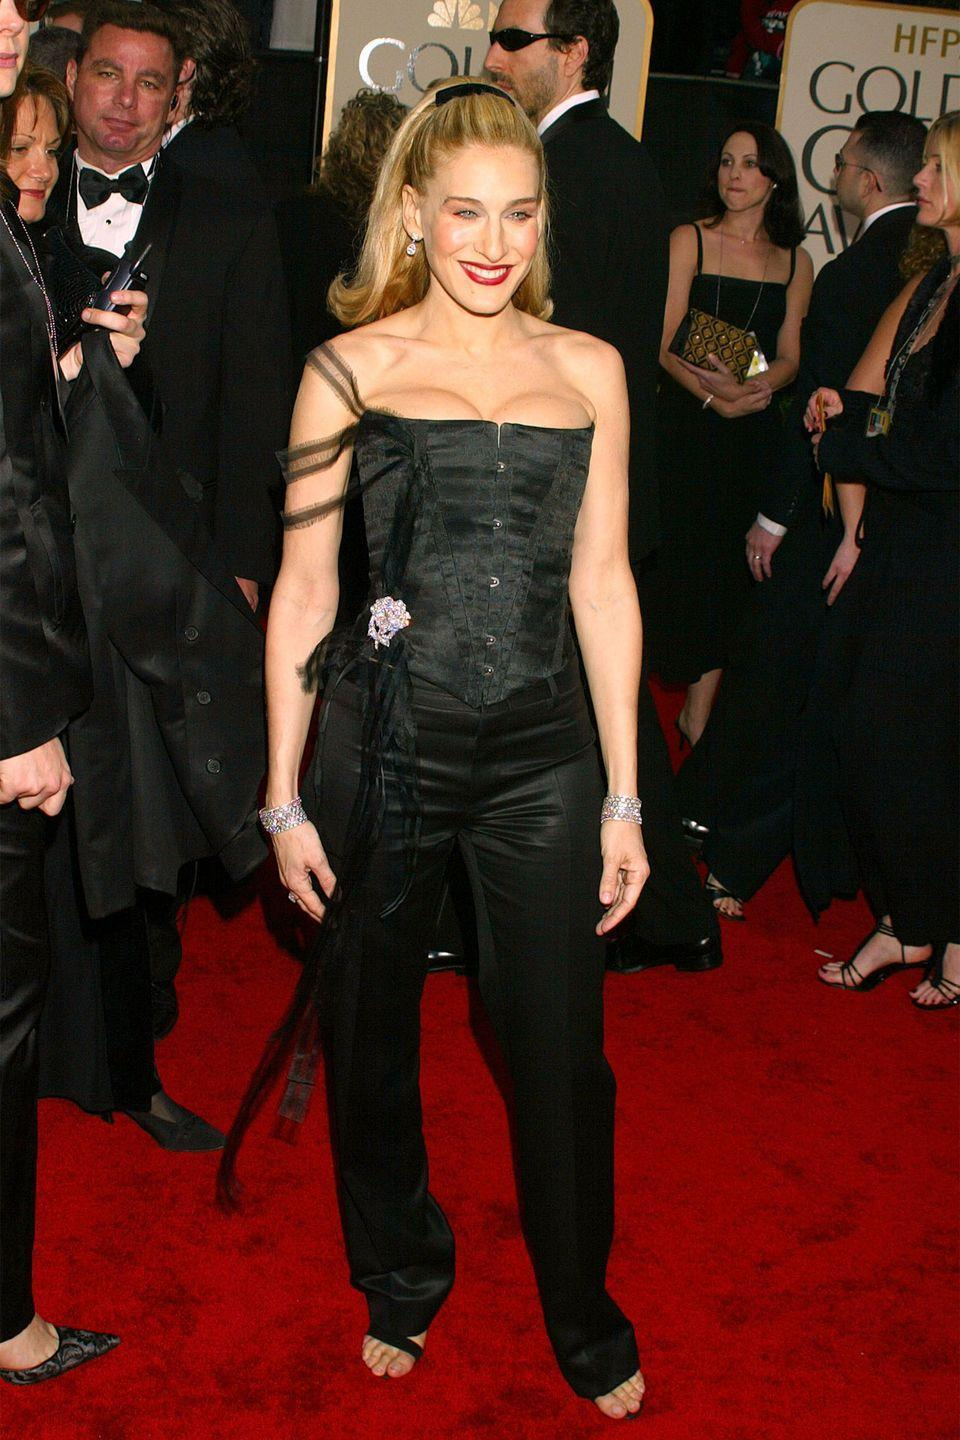 <p>The <em>Sex and the City </em>star gave us a Madonna-inspired look in a major corset in 2003.</p>